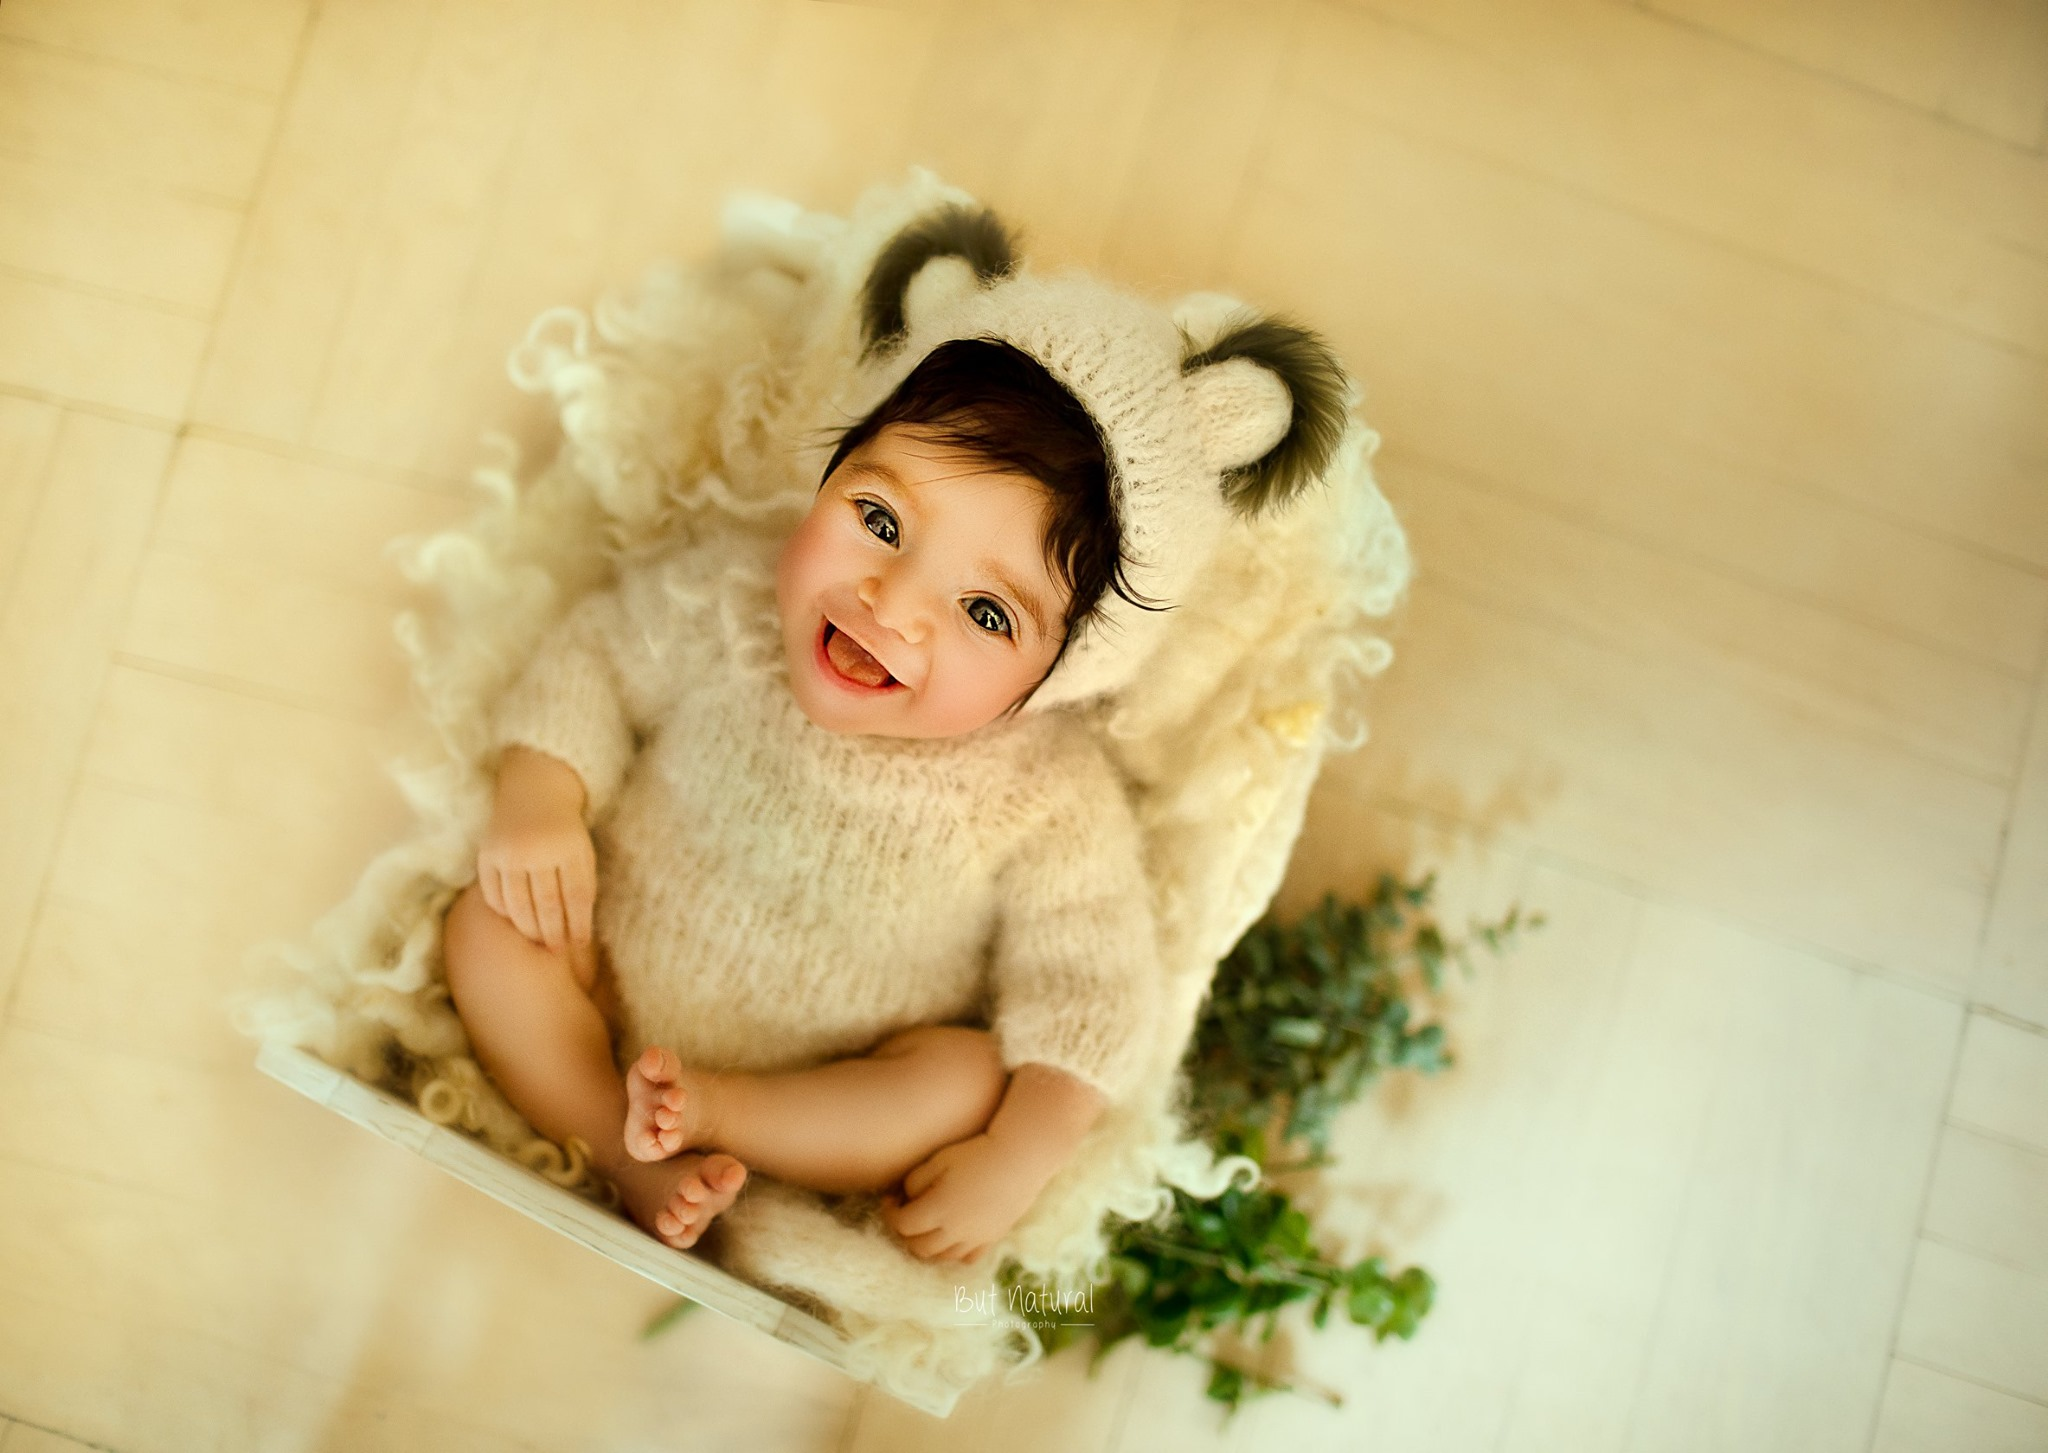 Newborn with a cute little smile in her face   But Natural Photography - Sujata Setia